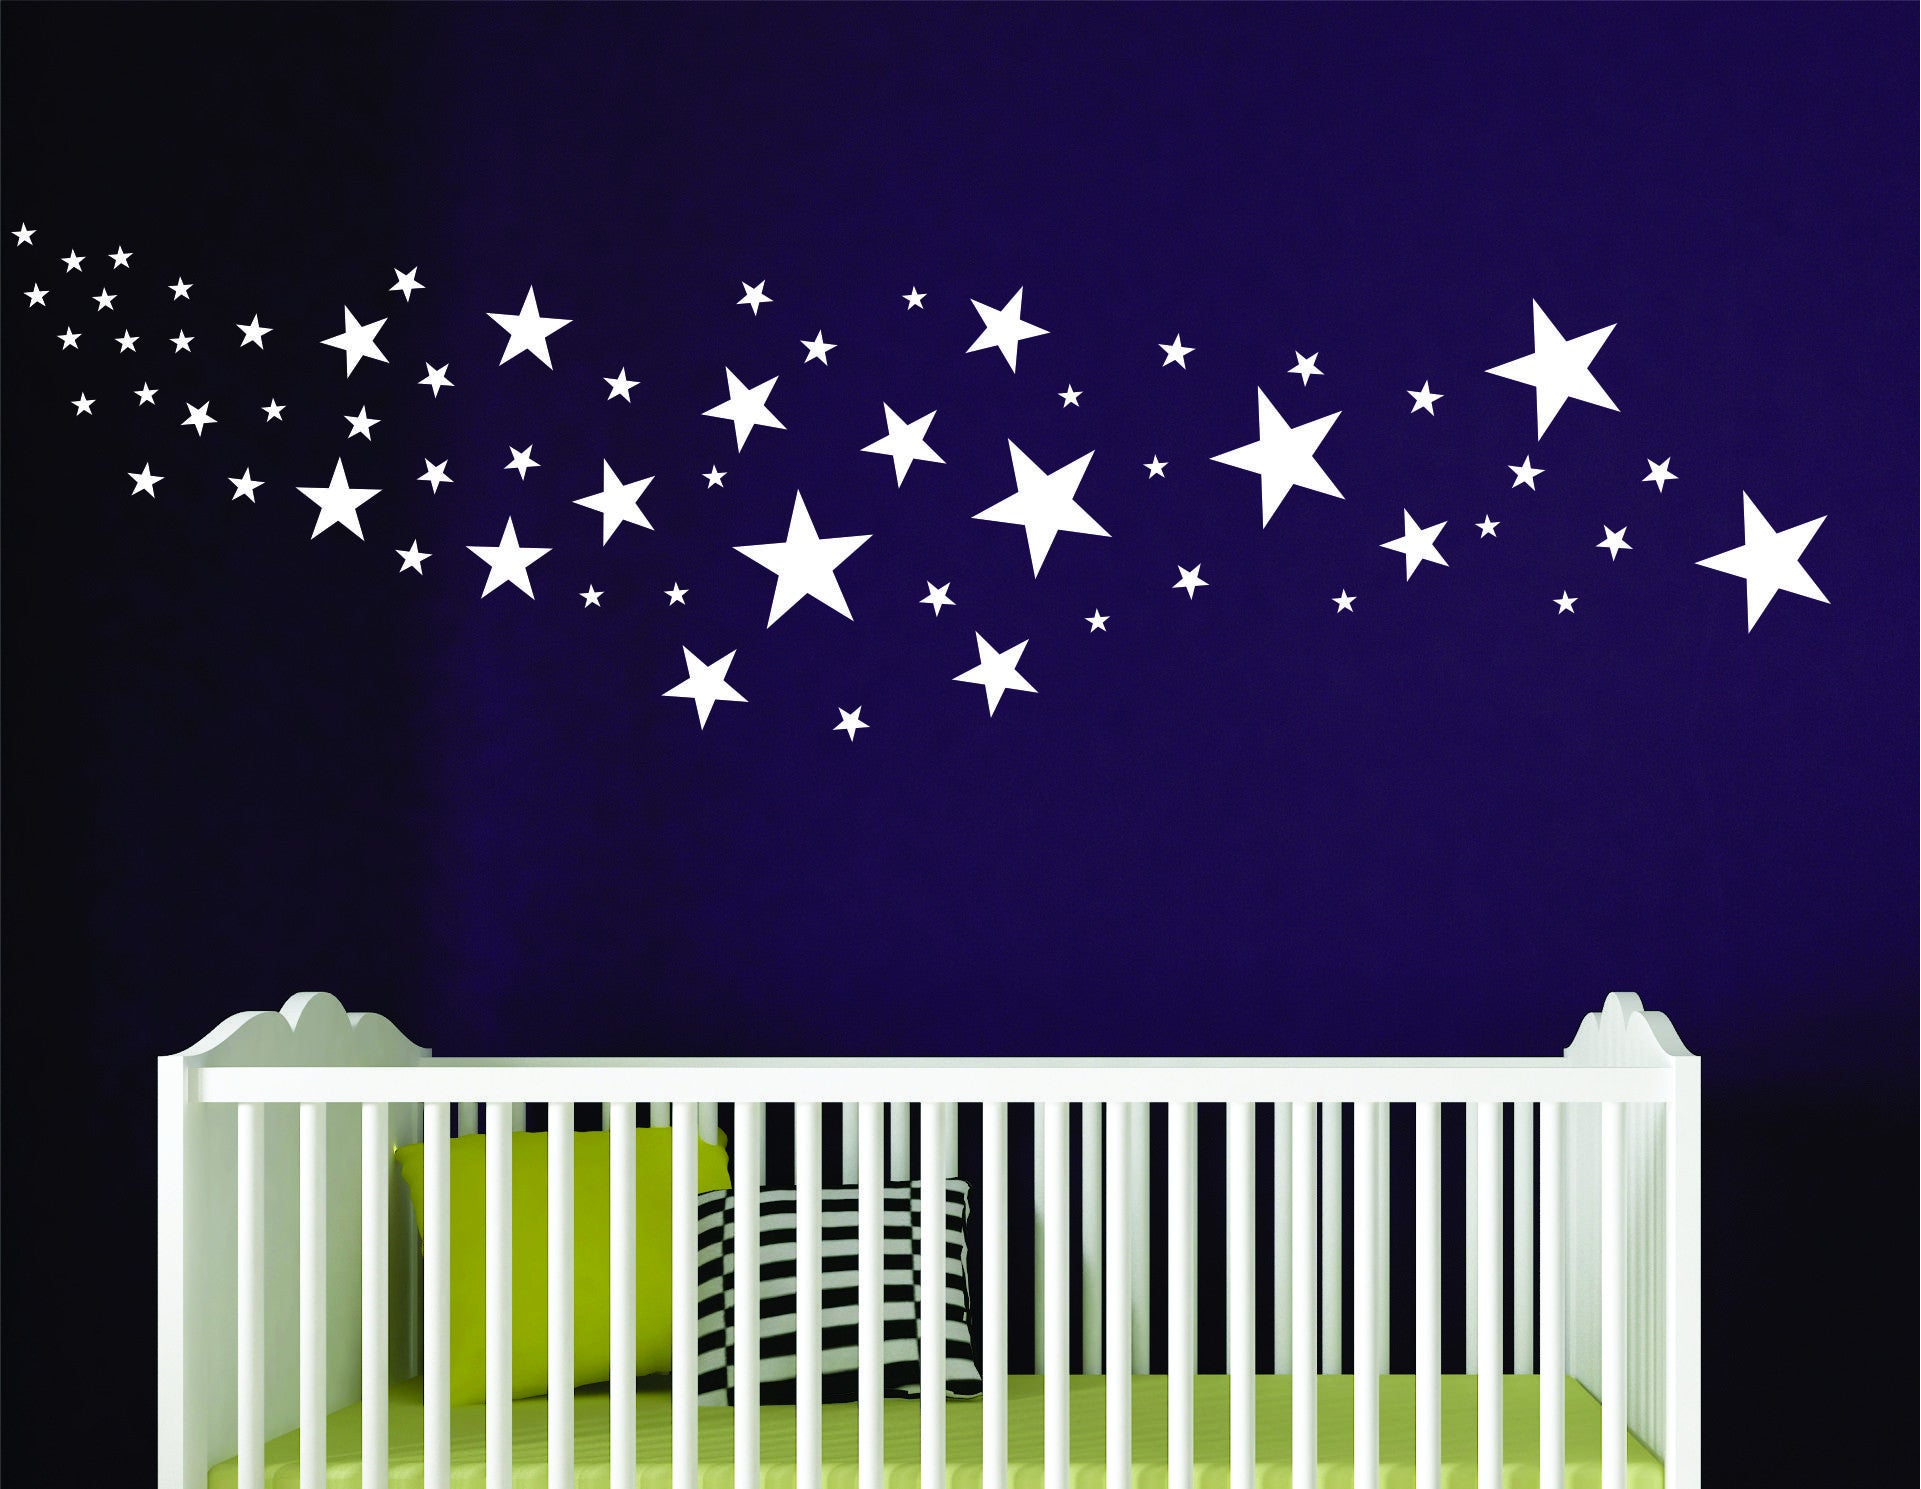 Star Decals - Design Pack of 109 Stars choose any color